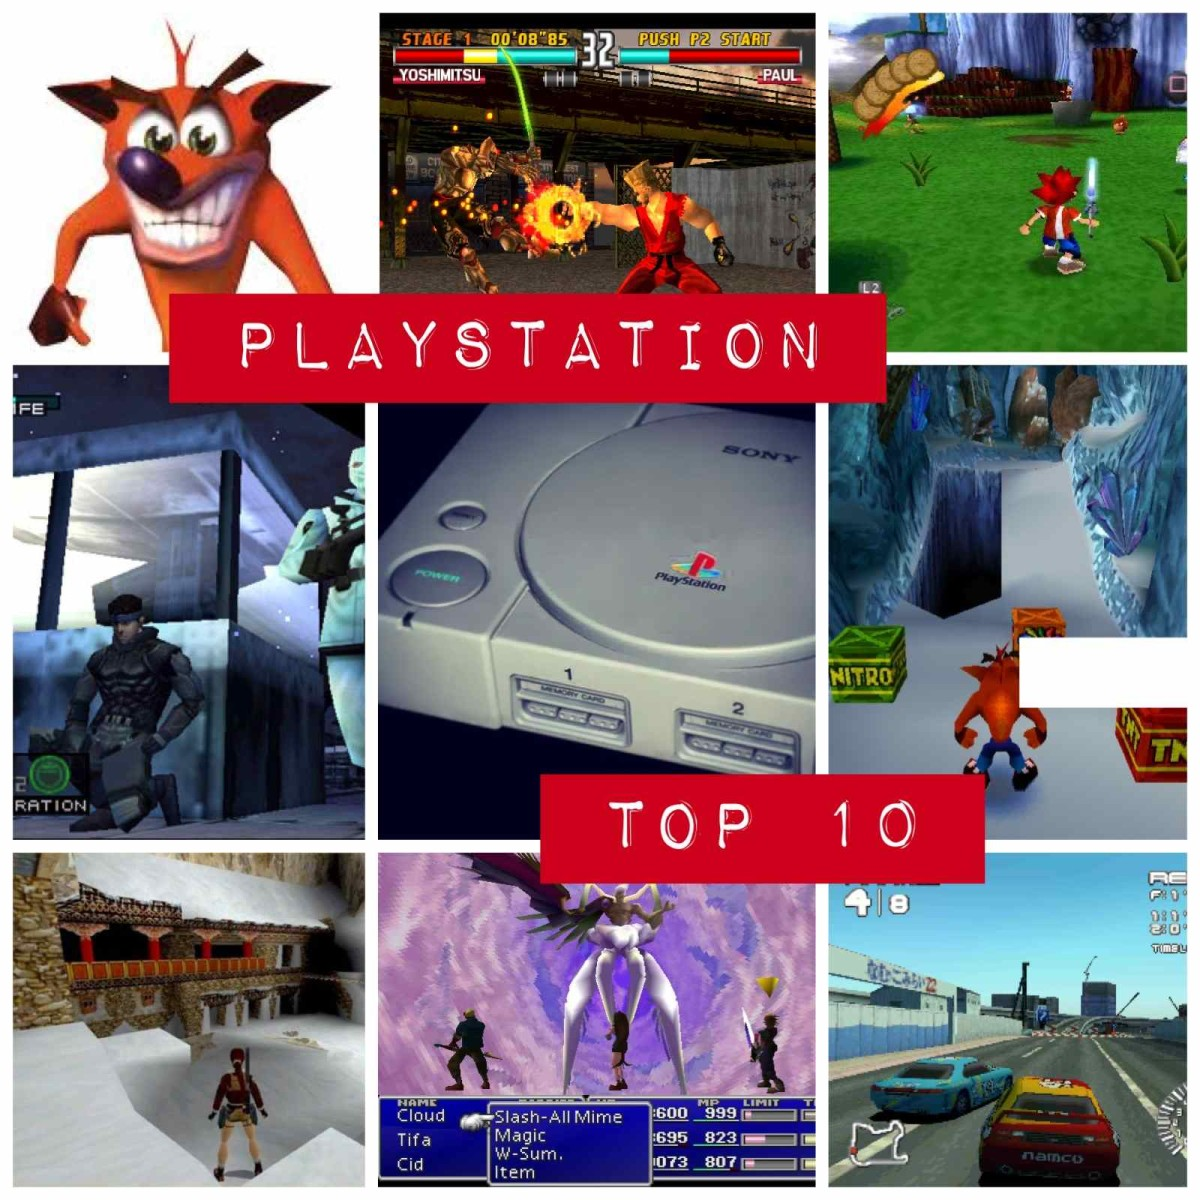 Top 10 PlayStation 1 Games: The Best of the Best